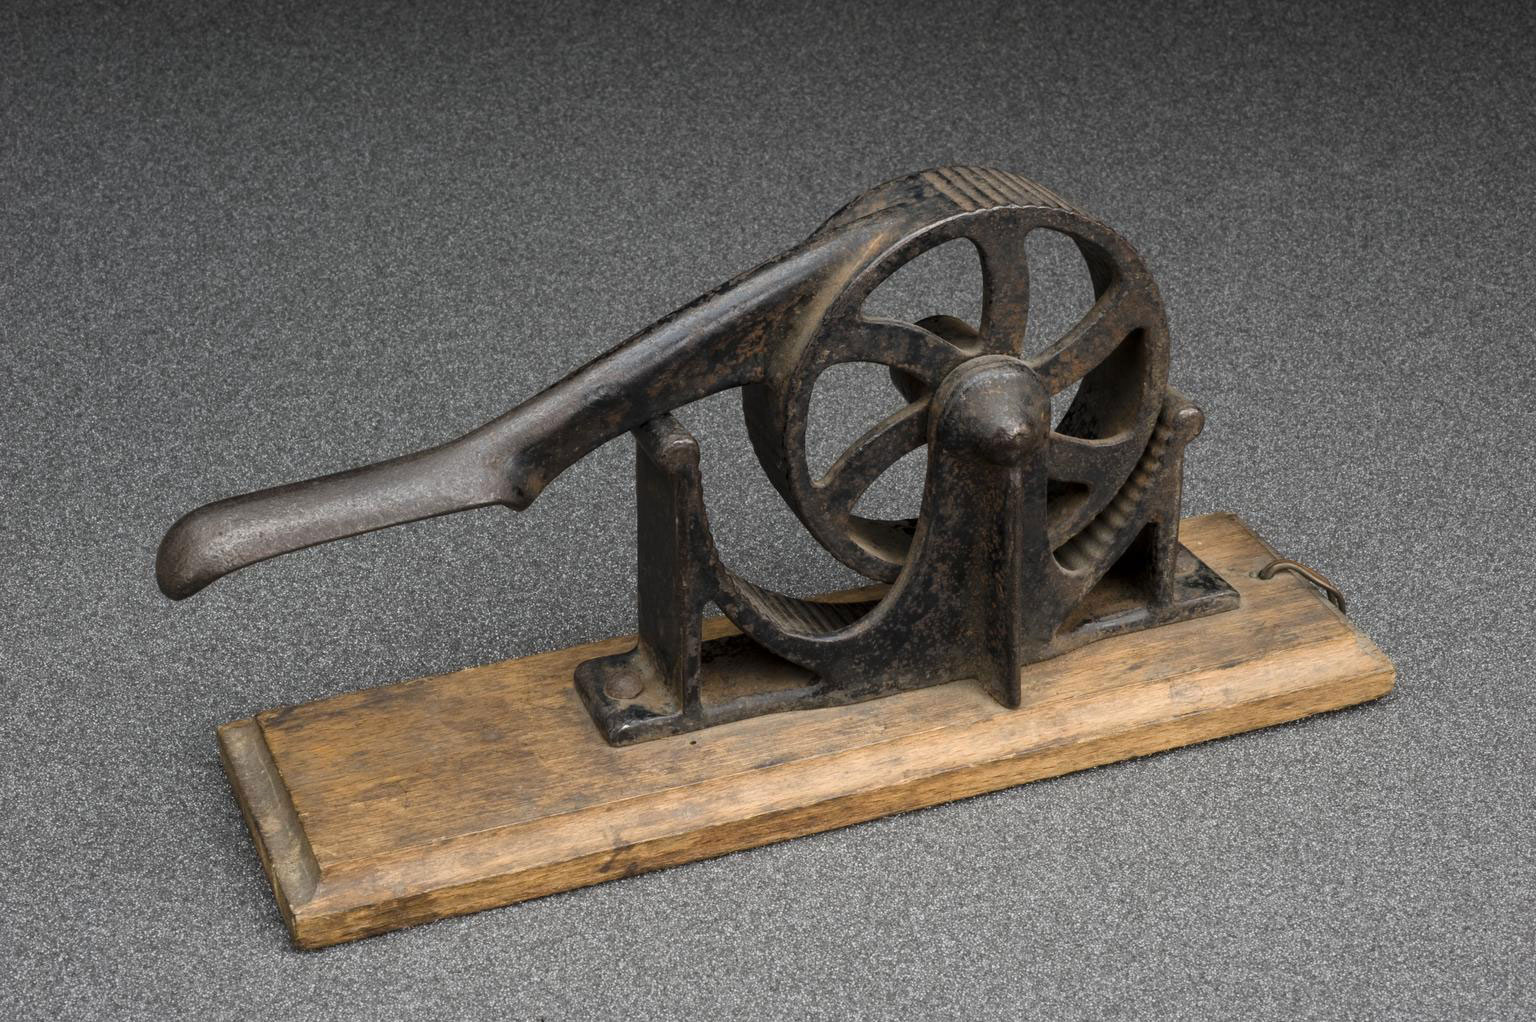 photograph of a machine with ridges and hand crank